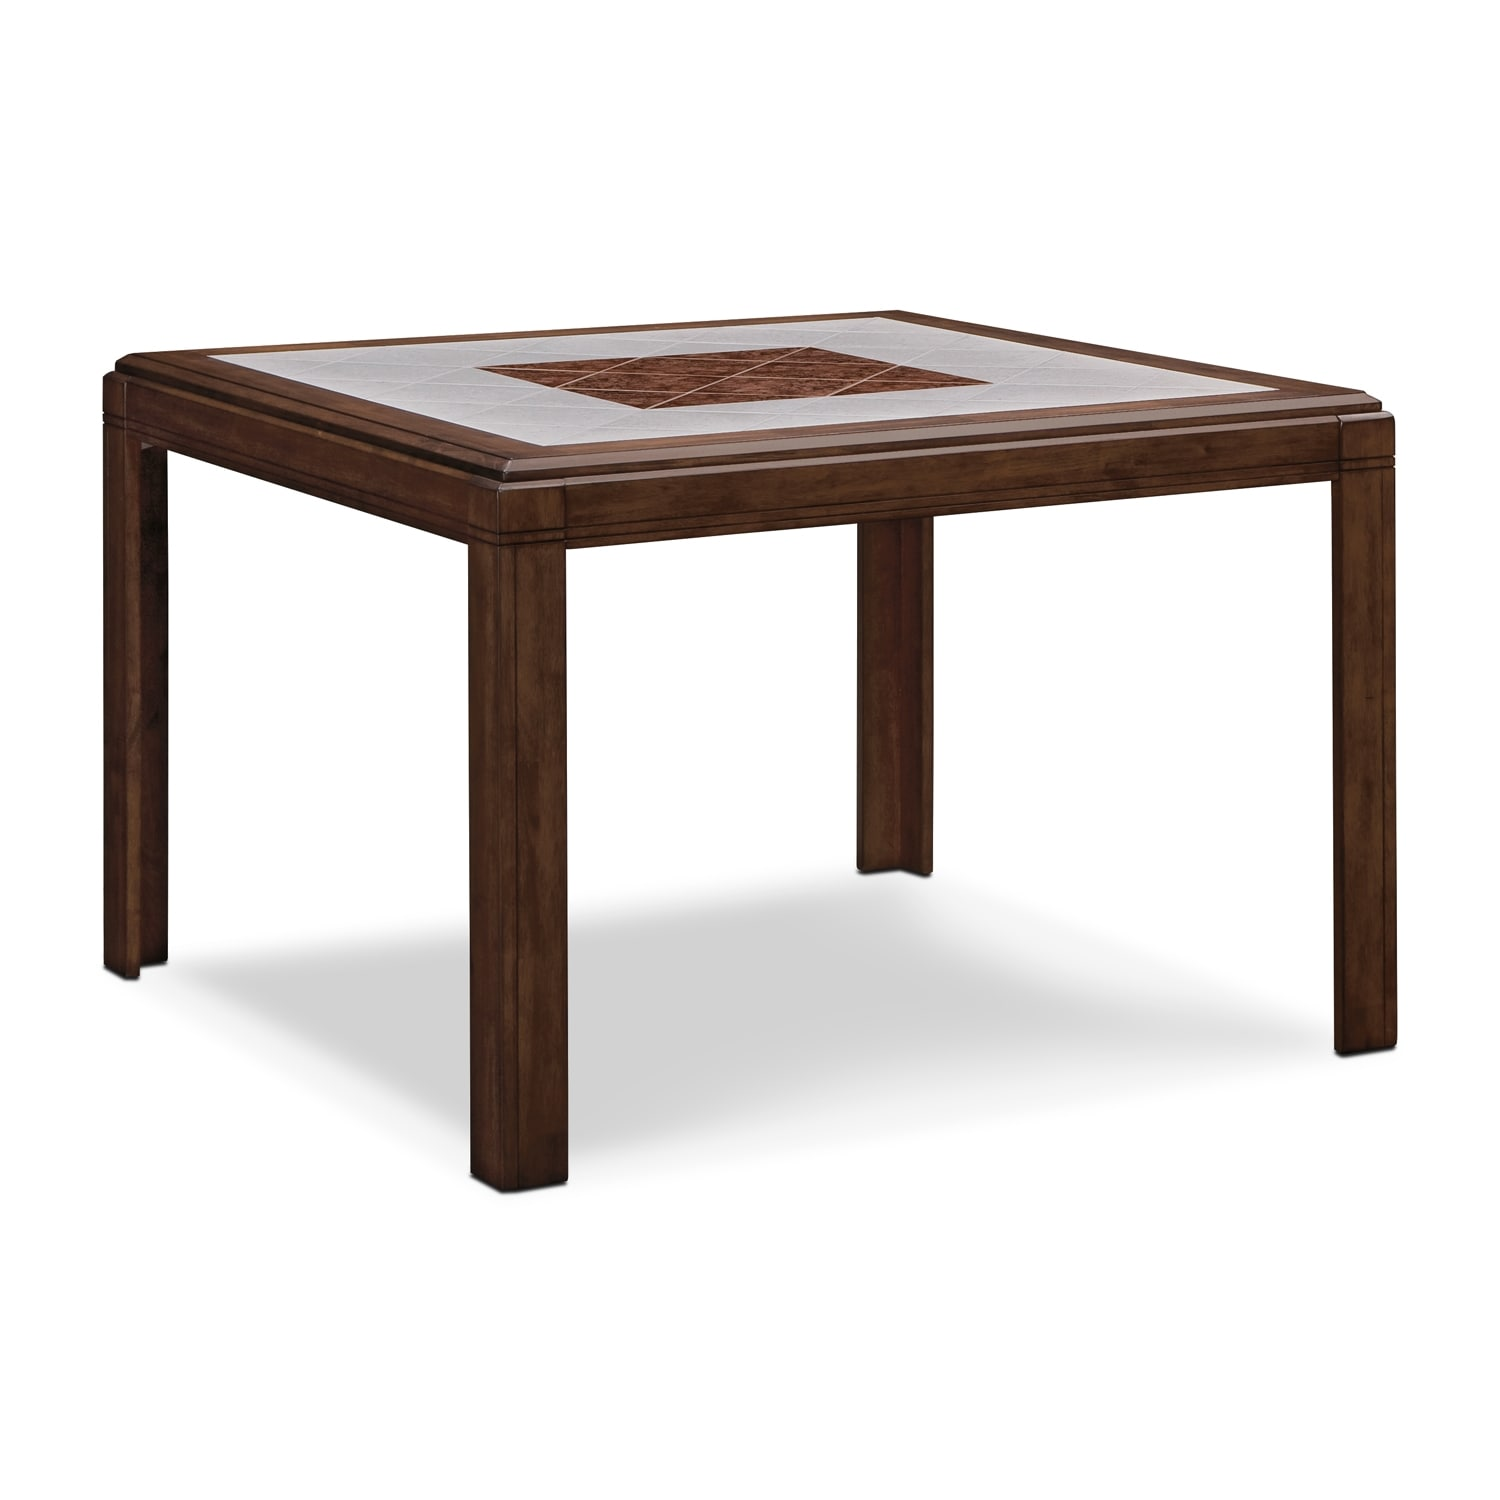 Dining room furniture deer creek ii counter height table - Height dining room table ...